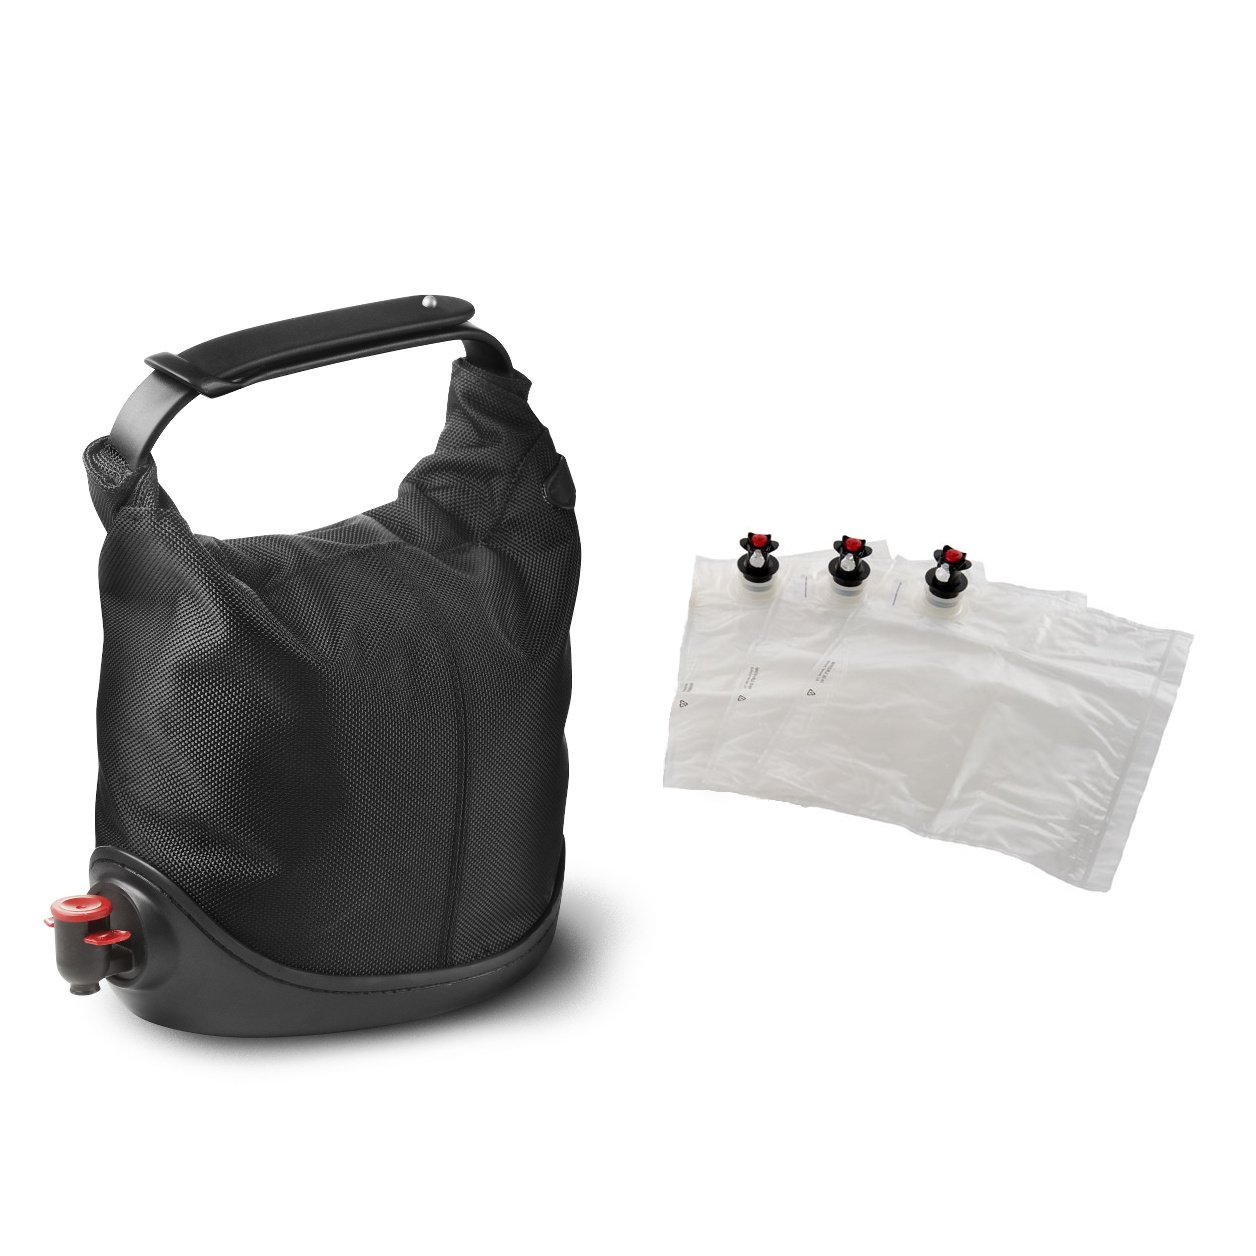 Menu Baggy Winecoat (with 3 Disposable Beverage Bags included)